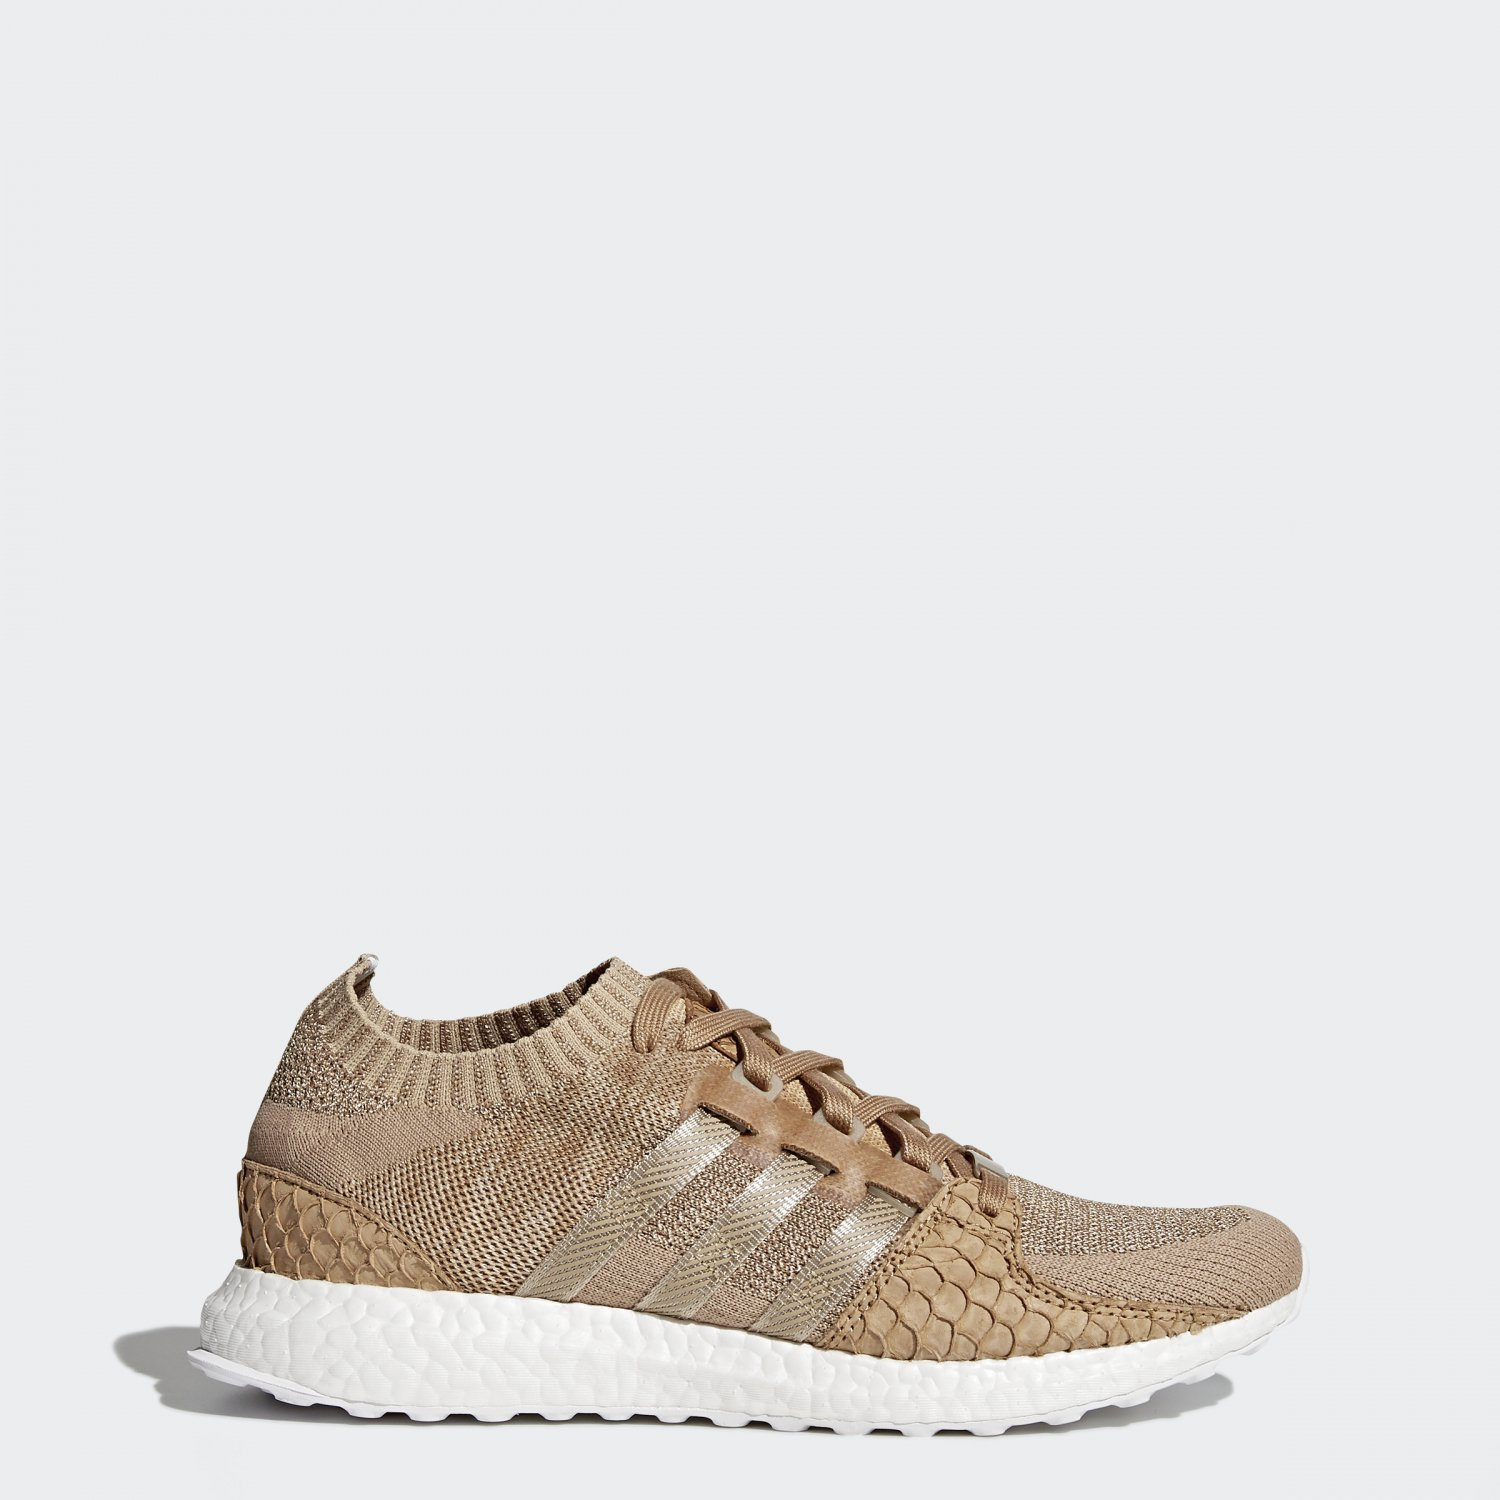 EQT Support Ultra Pusha T Brown Paper Bag Bodega Babies